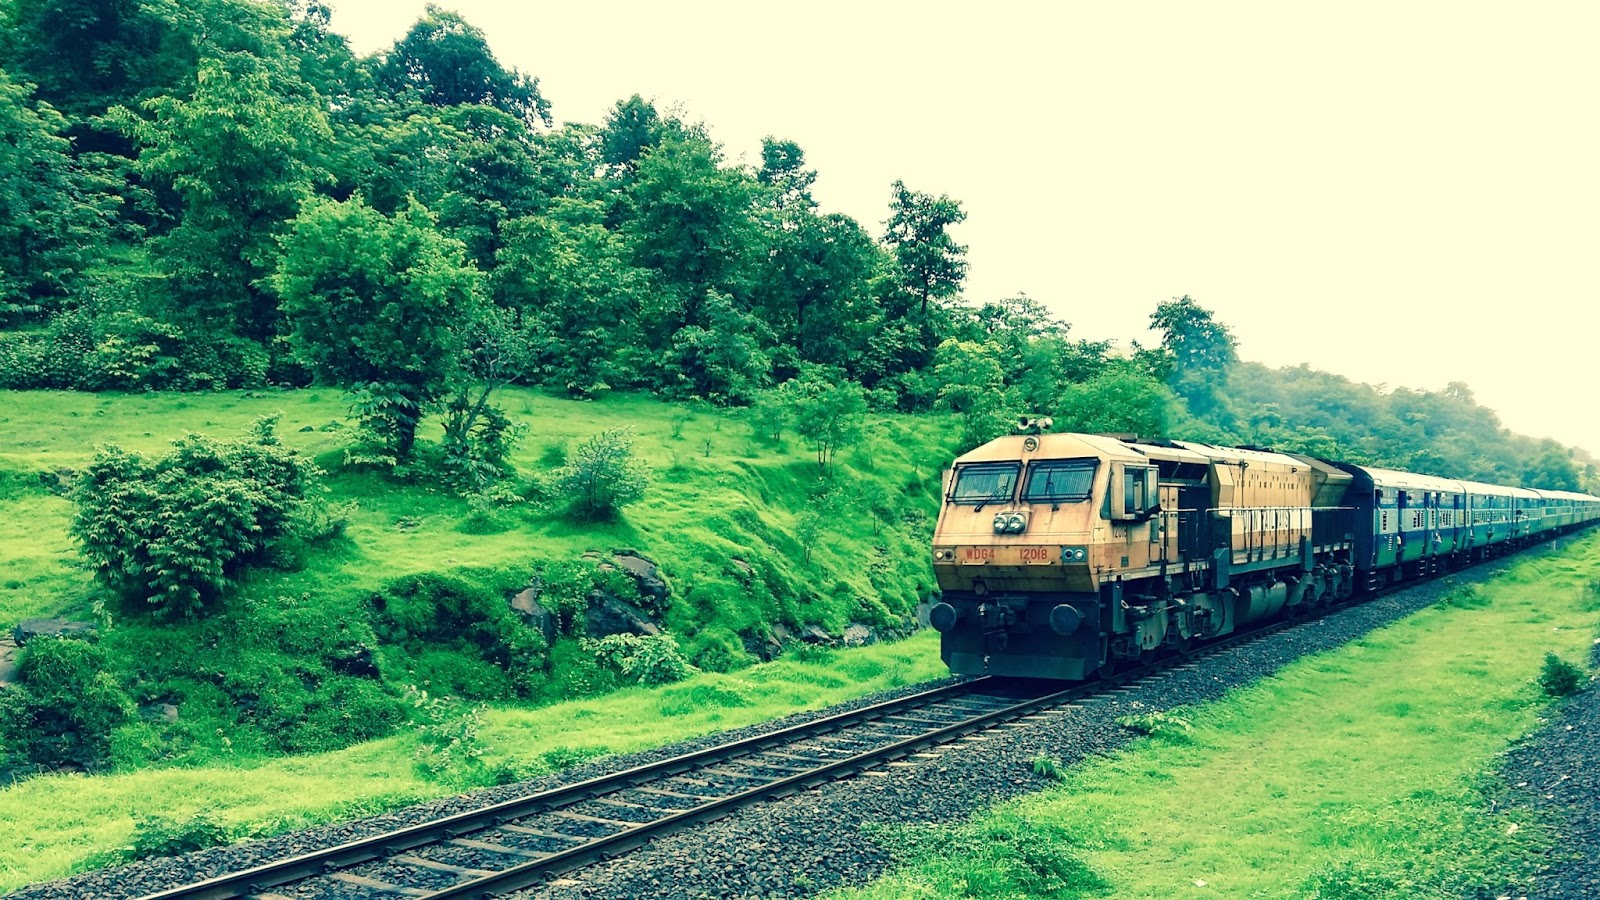 Indian Train Hd Wallpapers 1080p